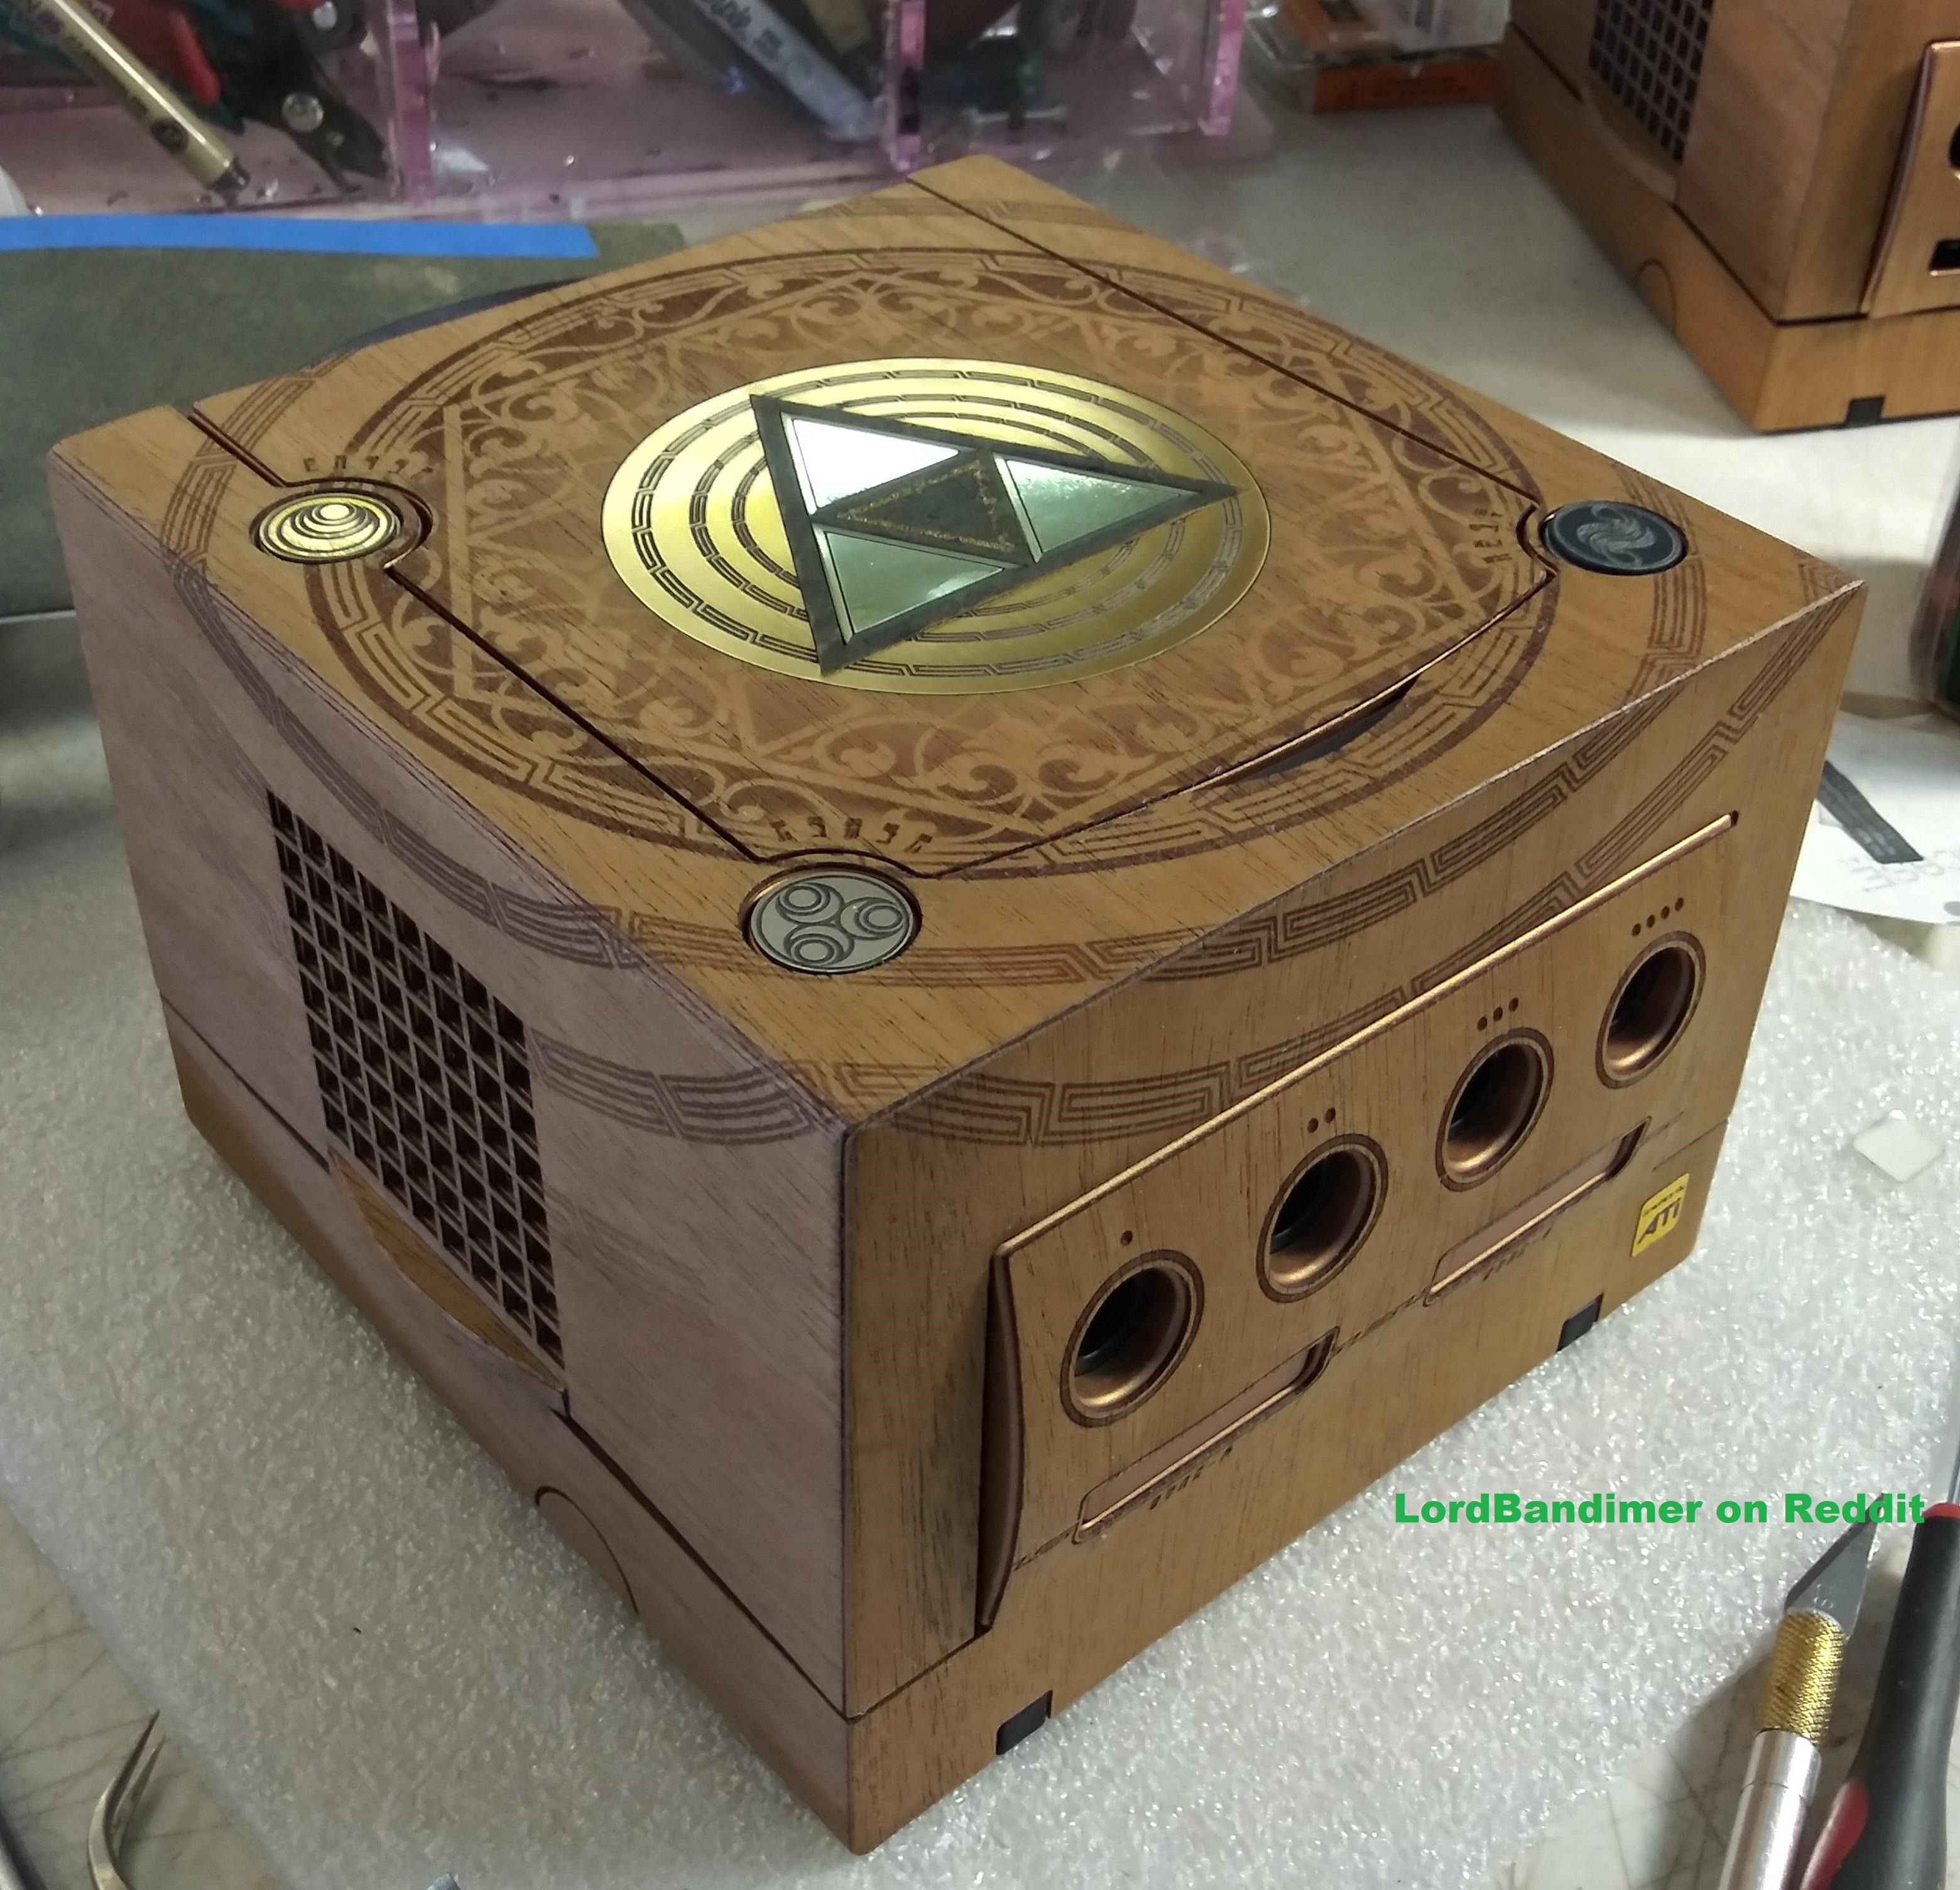 The GameCube gets a gorgeous mahogany makeover